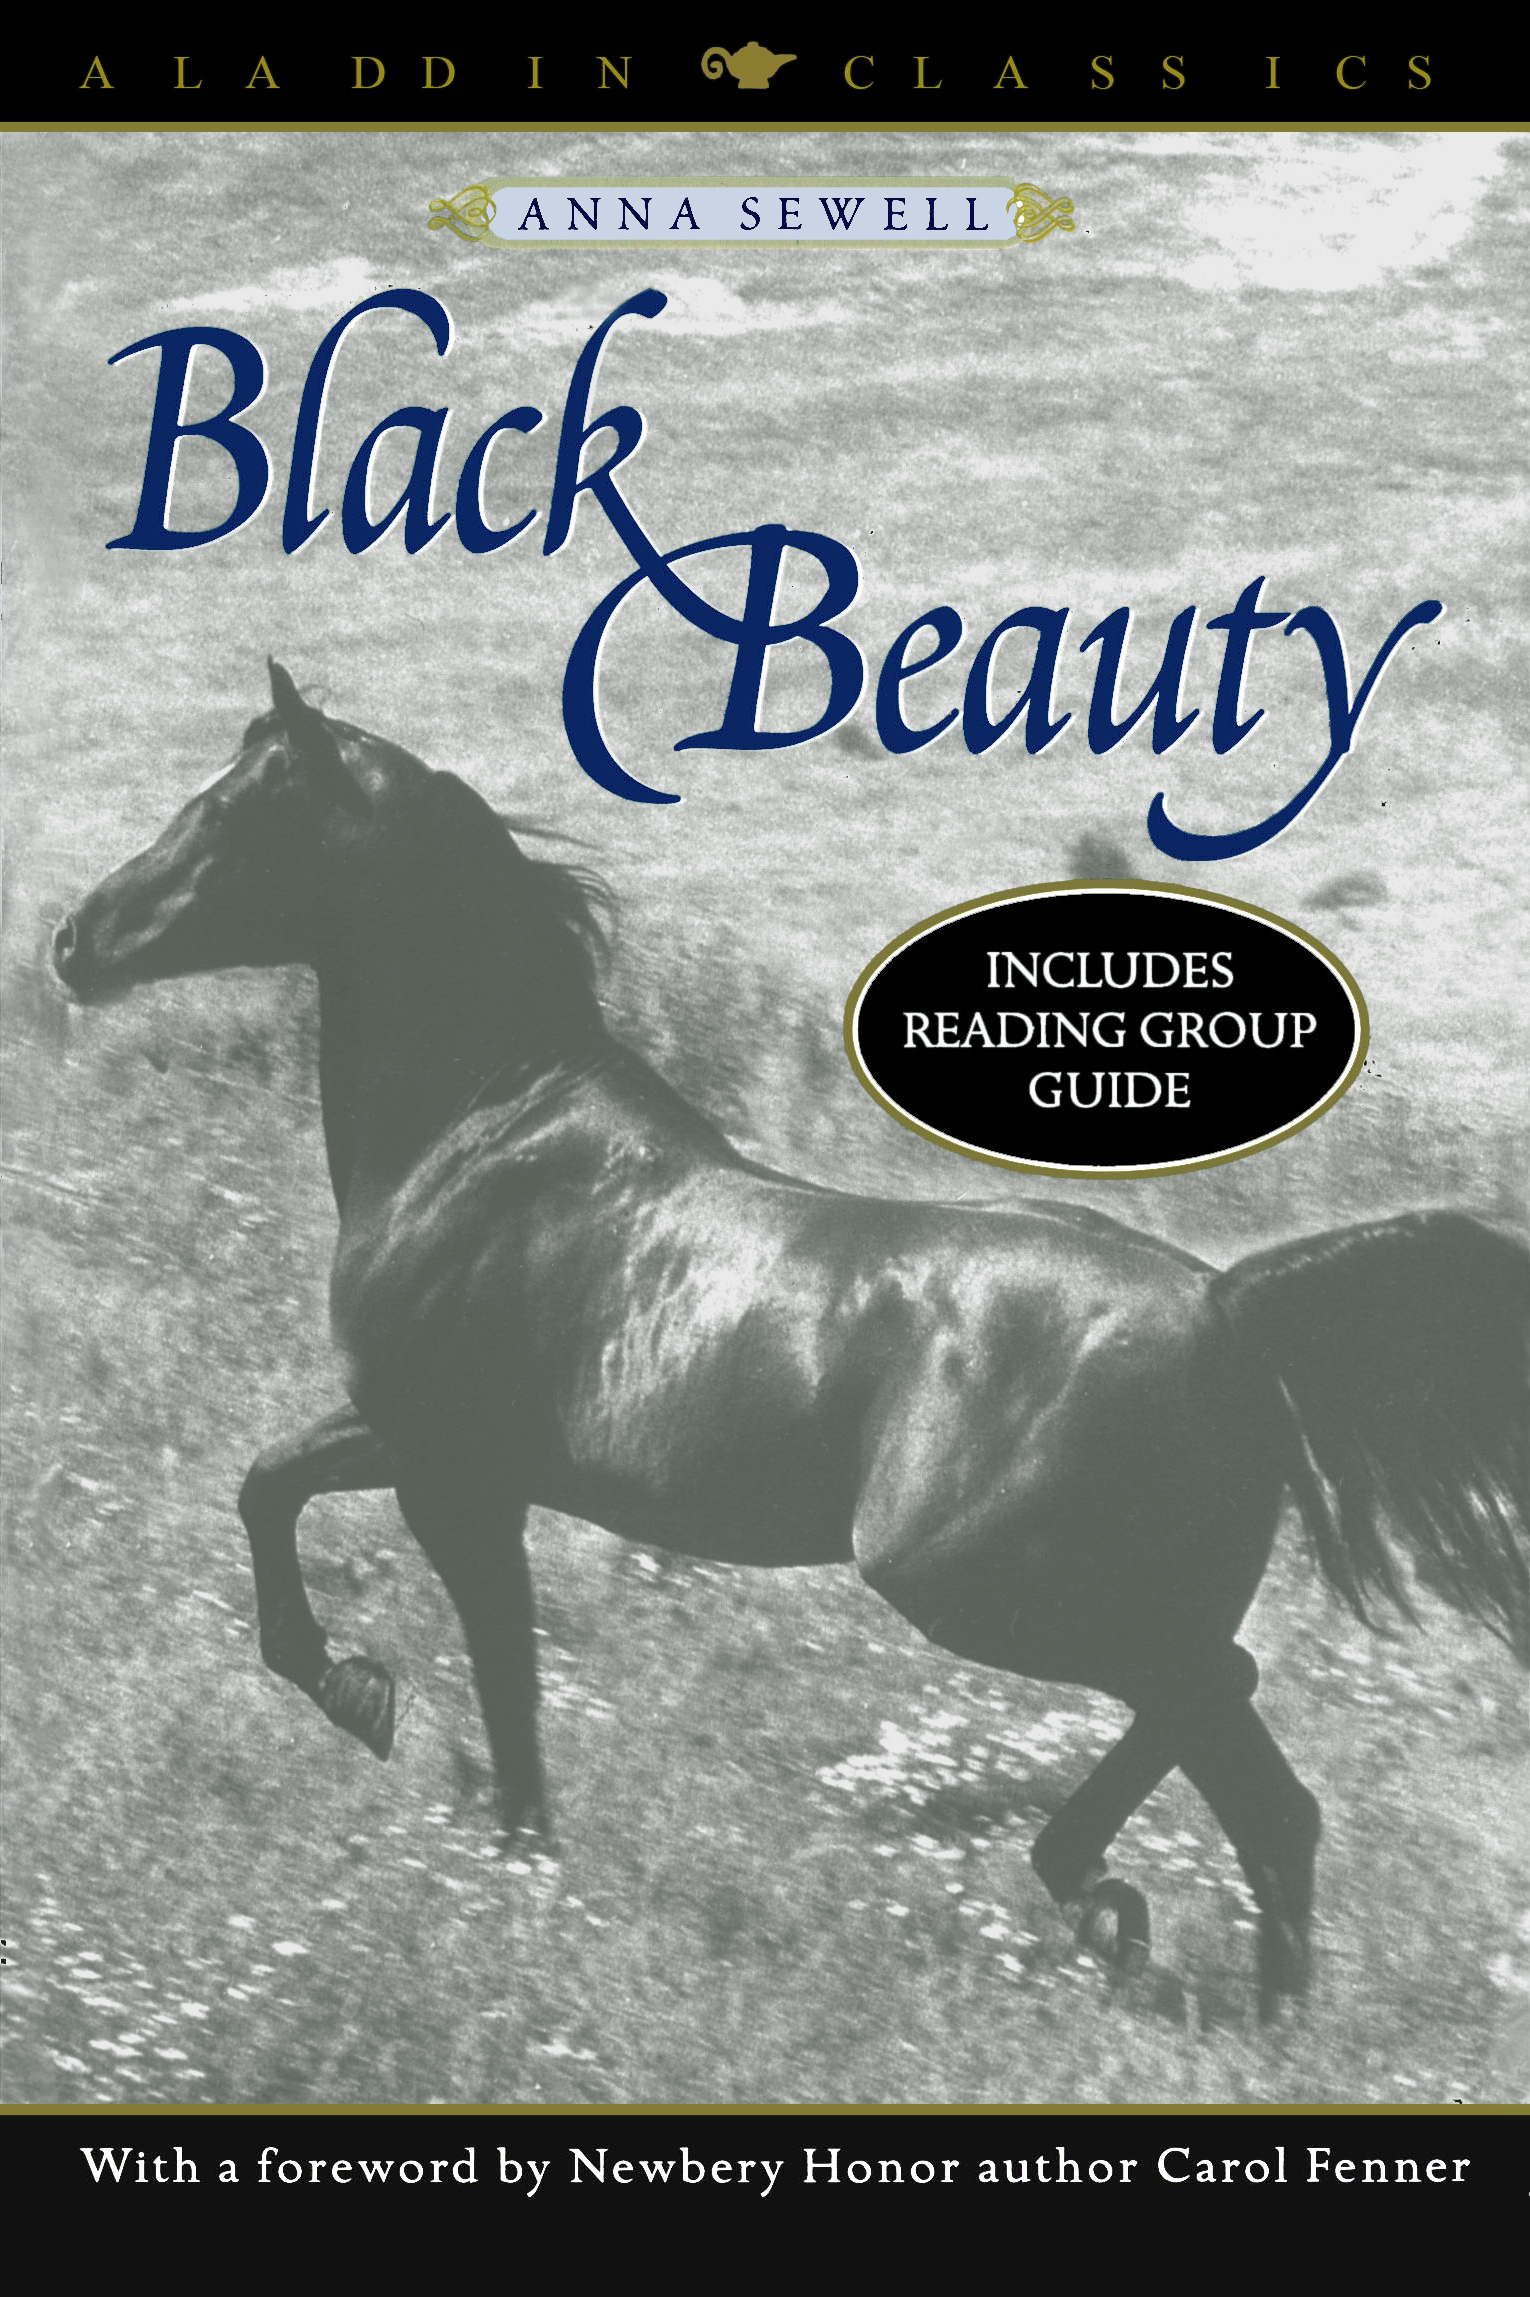 Story of black beauty with pictures